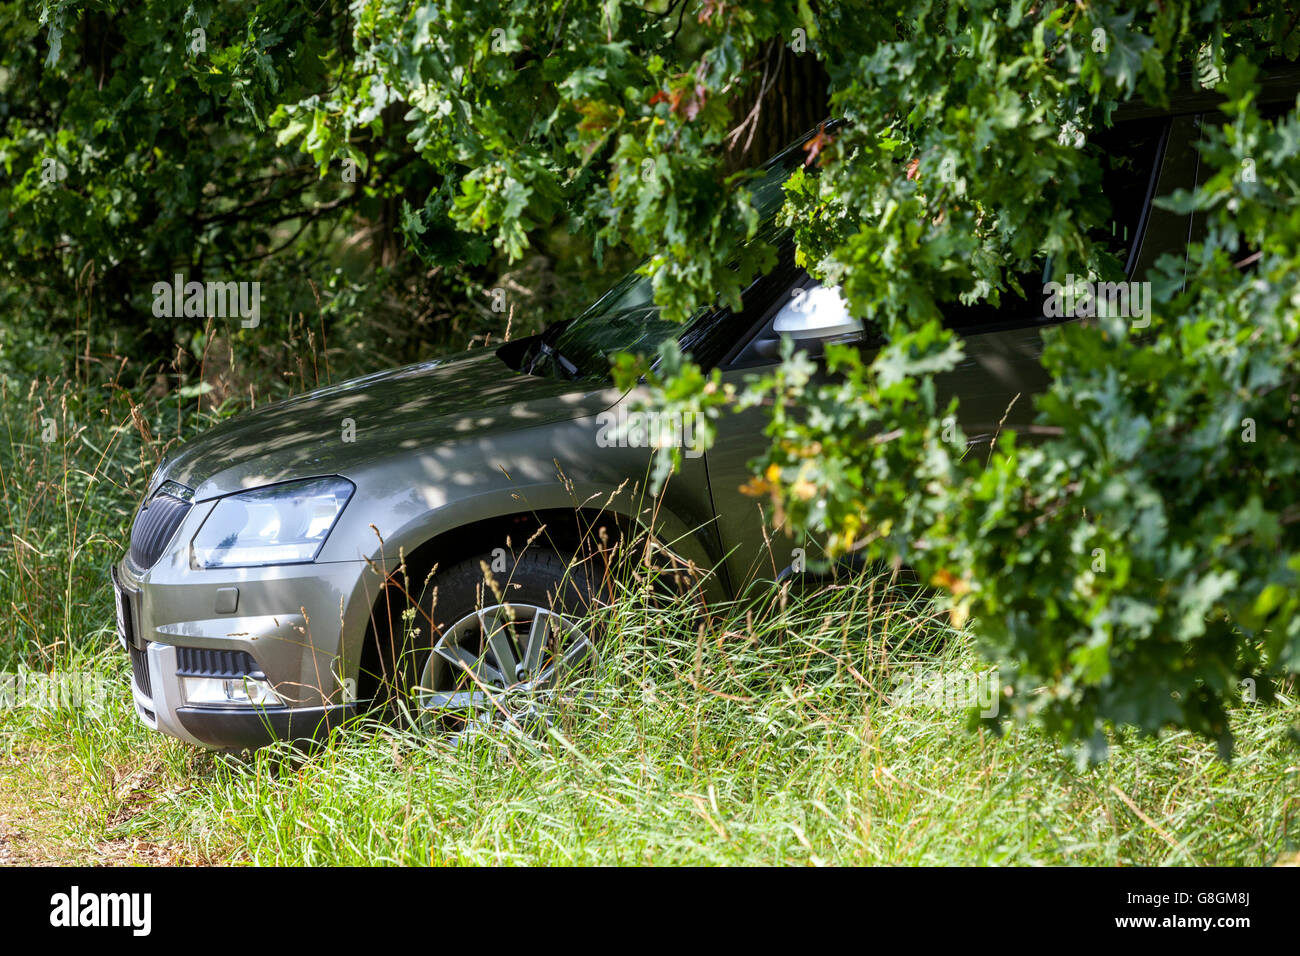 passenger car parked at the edge of oak forest under trees - Stock Image